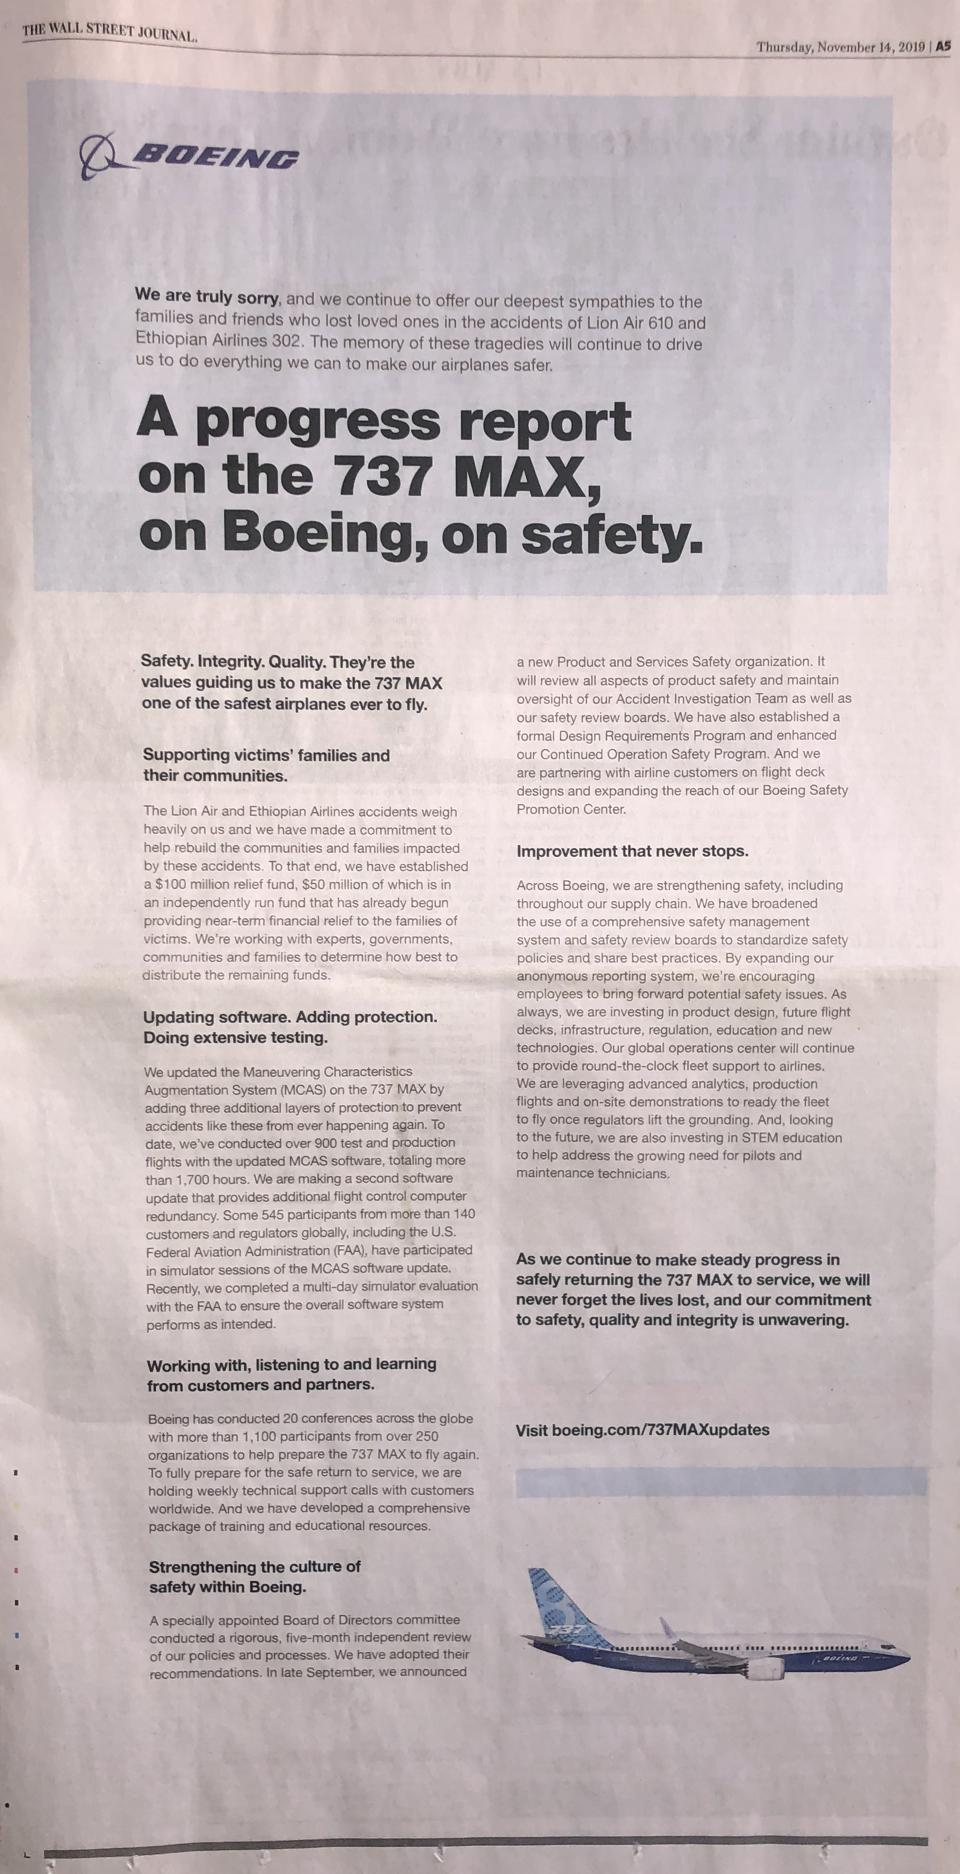 Boeing advertisement in The Wall Street Journal last November.